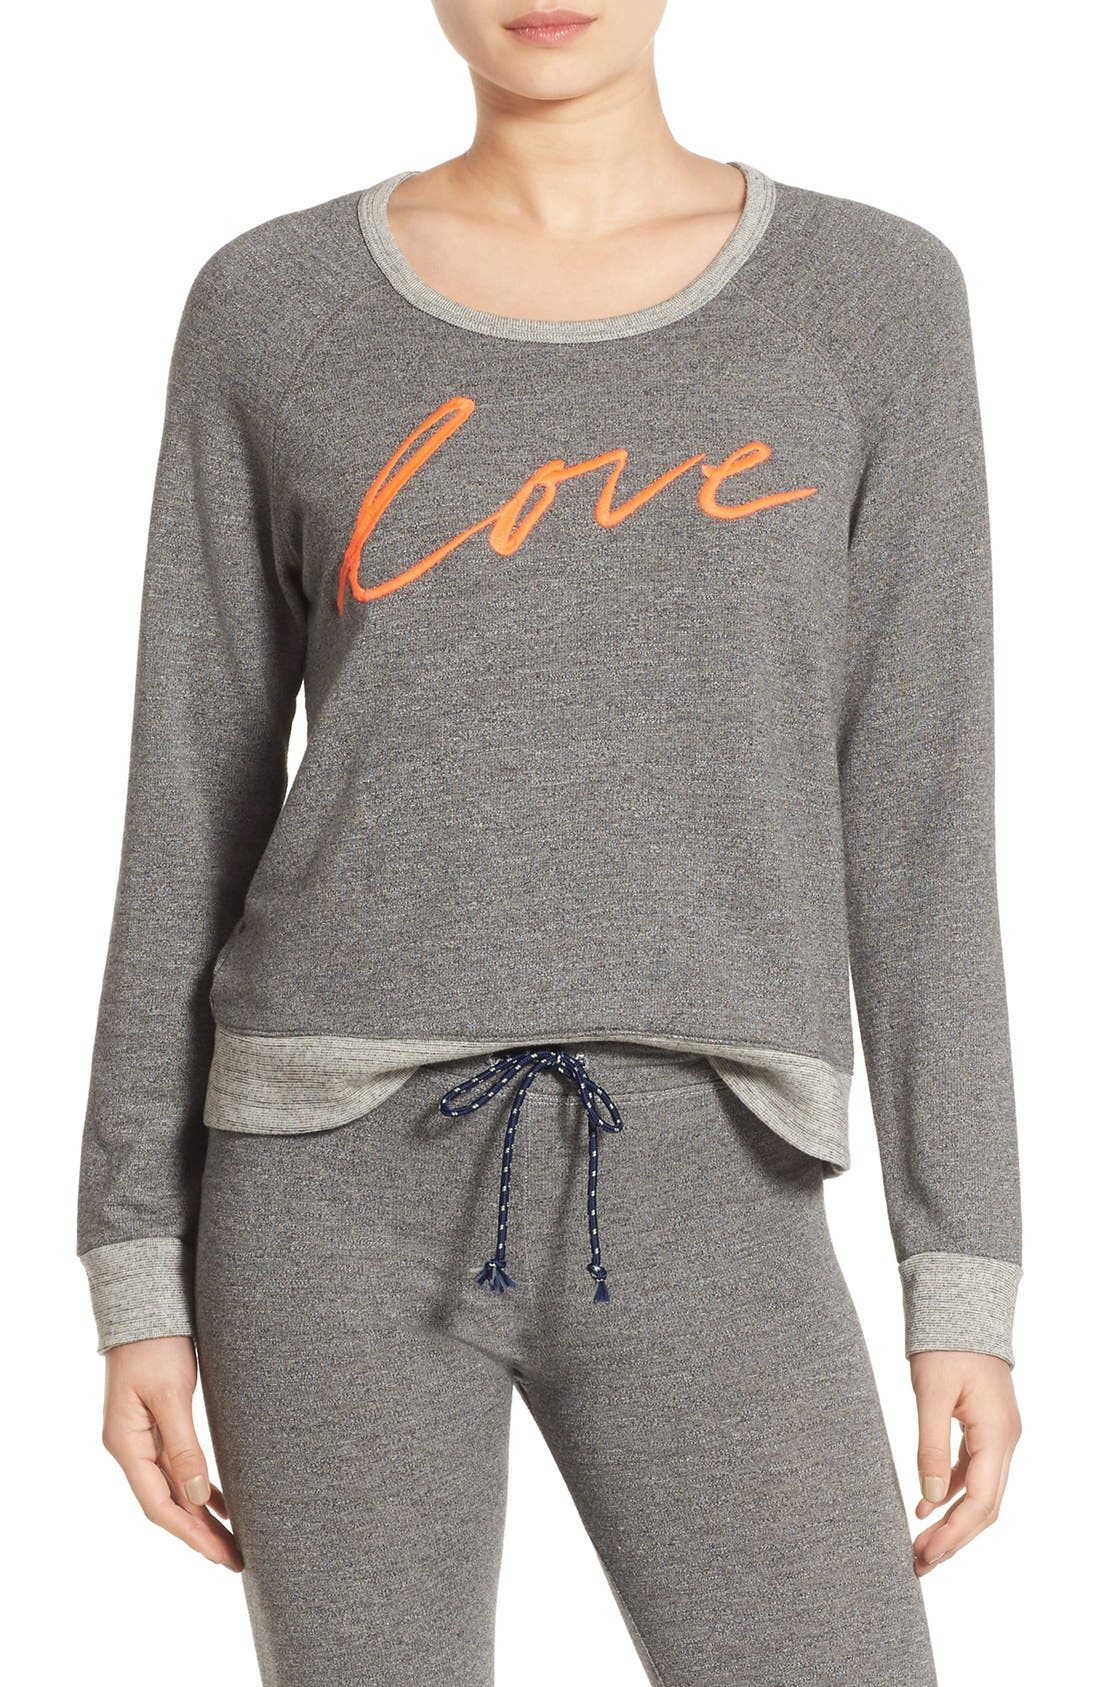 'Love' Pullover Sweatshirt, Main, color, 039